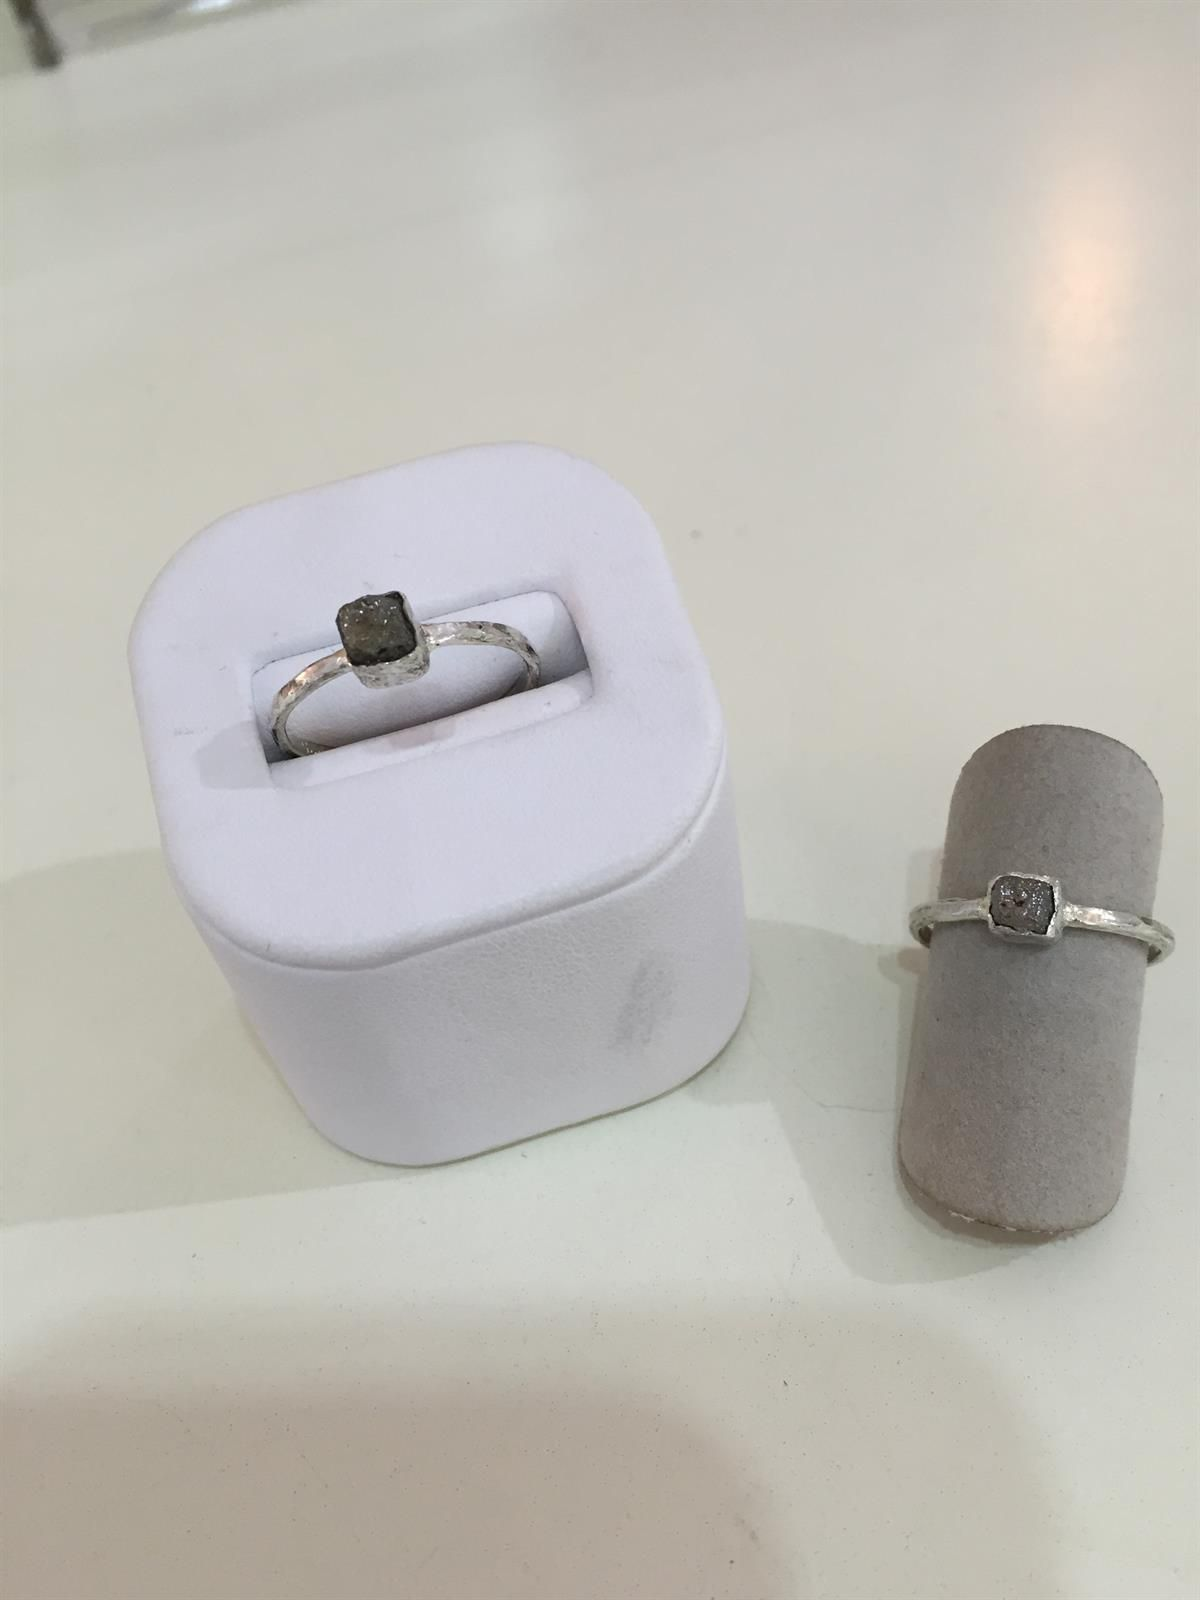 Introducing Pebbles by Gemstone Creations! Handcrafted sterling silver rings with natural rough diamonds.